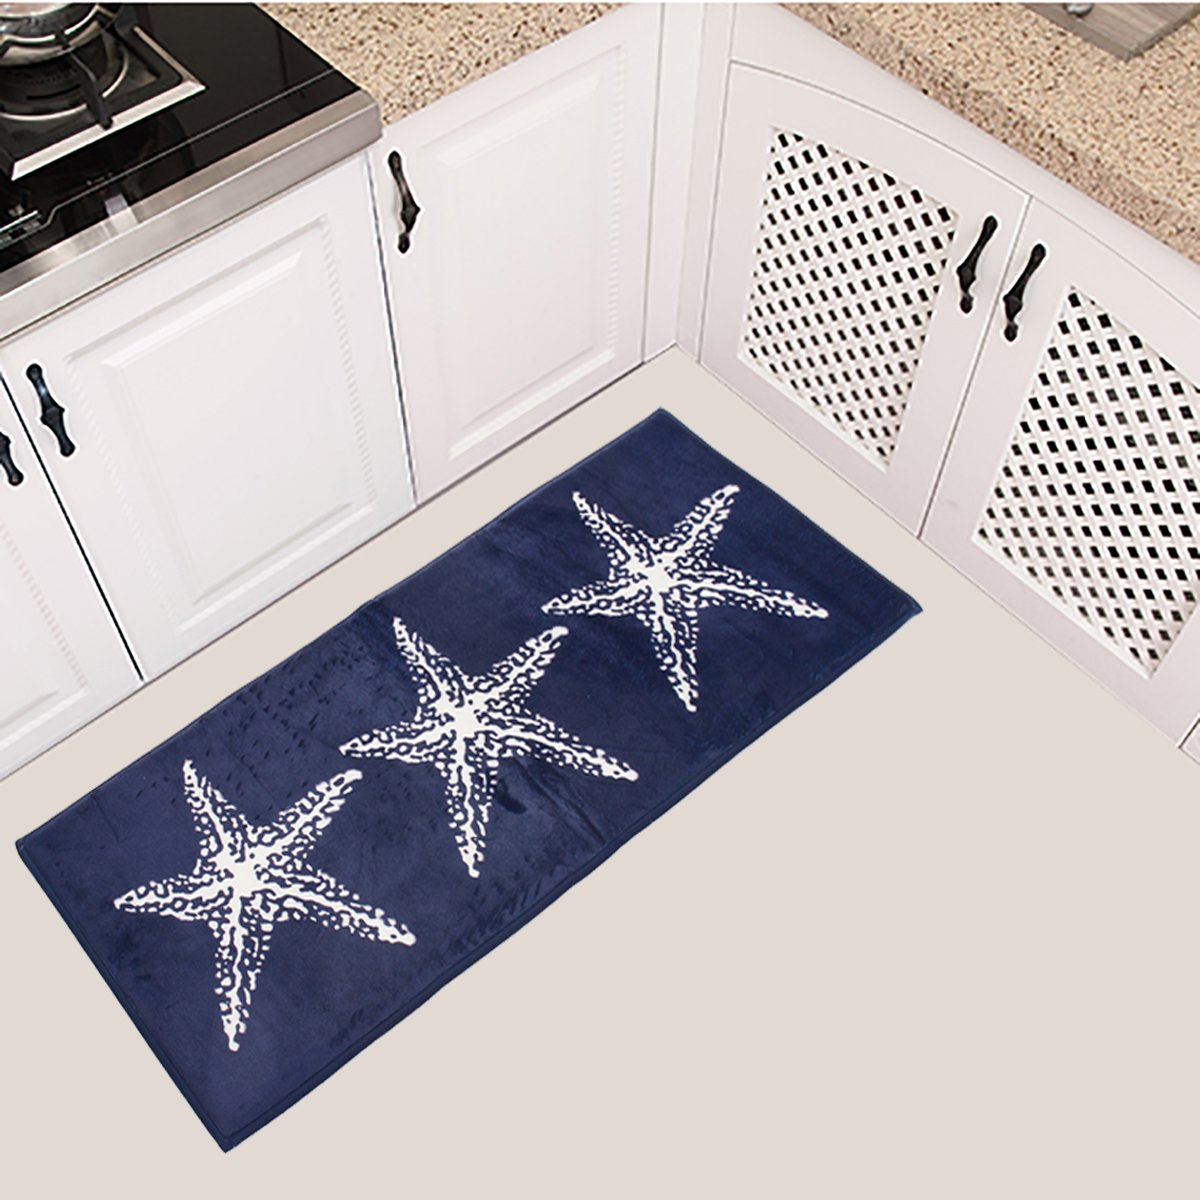 Jeteven Kitchen Floor Rug Door Mat Bath Mat Non-slip Runner Bathroom Carpet for Kitchen Bathroom Blue 45x115cm